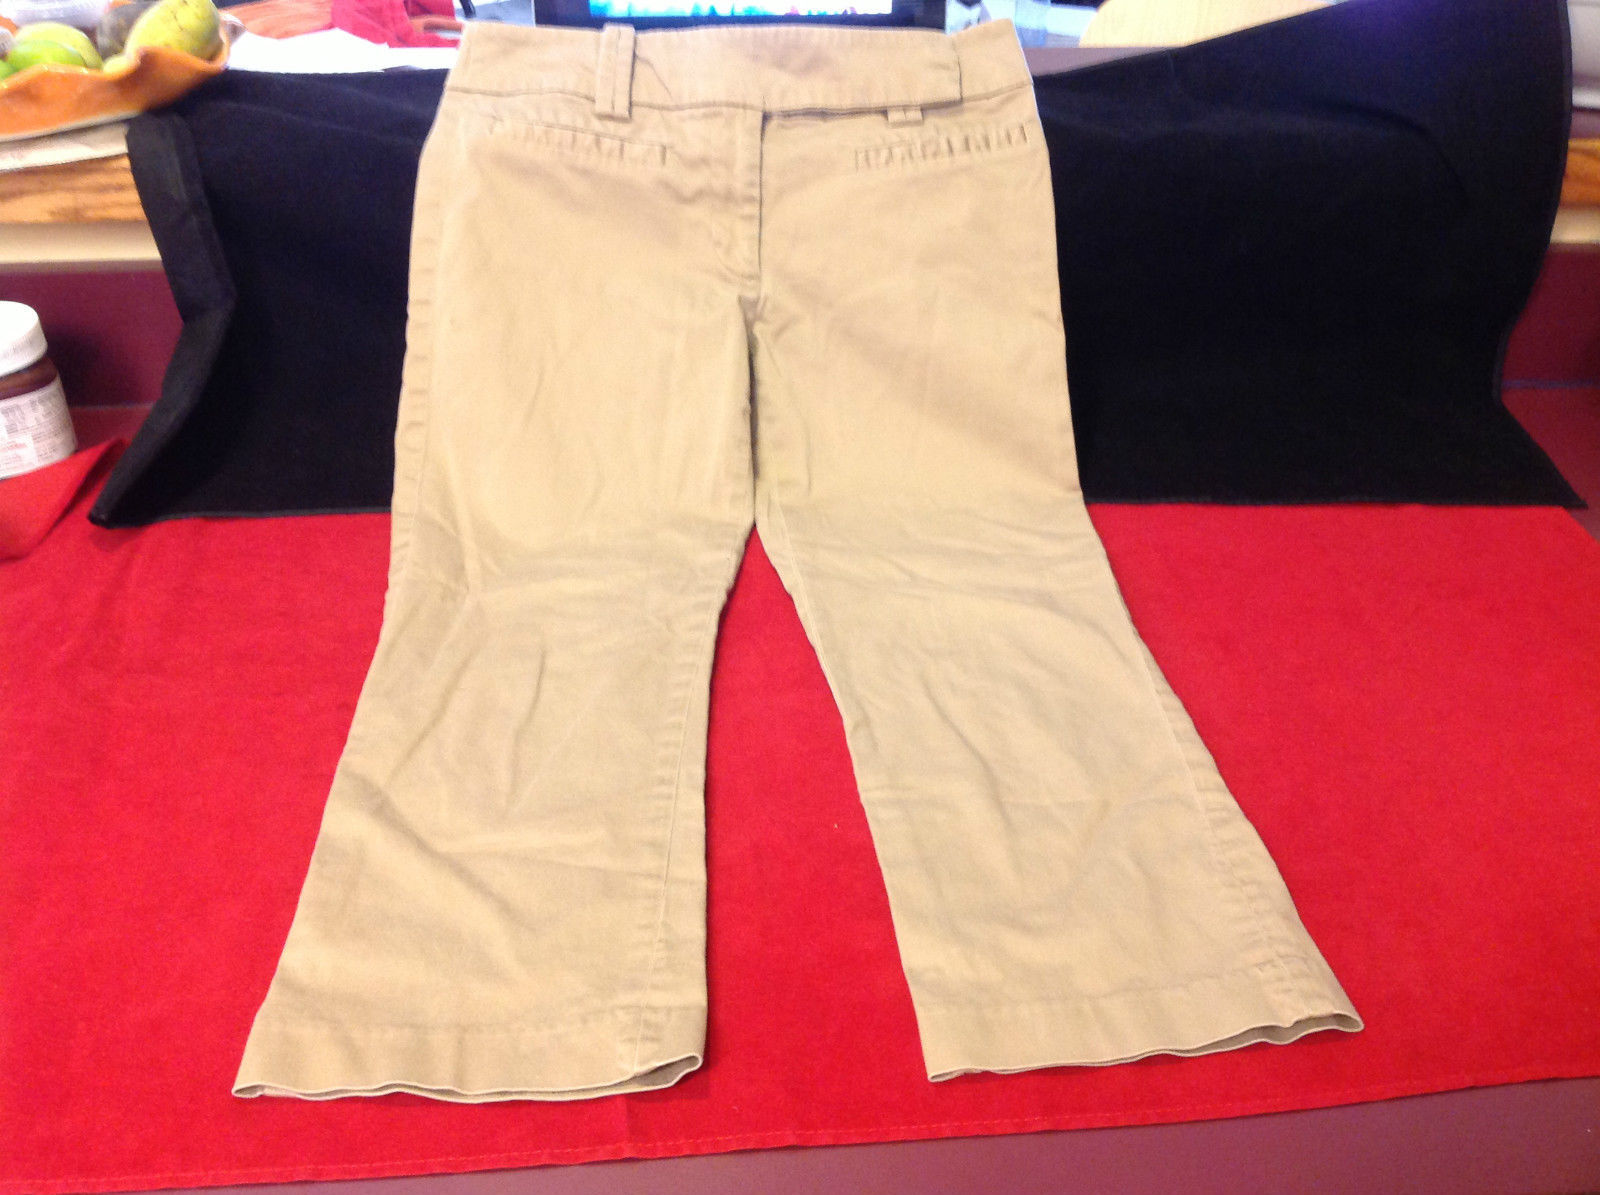 Zara Basic Ladies Khahi Colored Pants Size 6